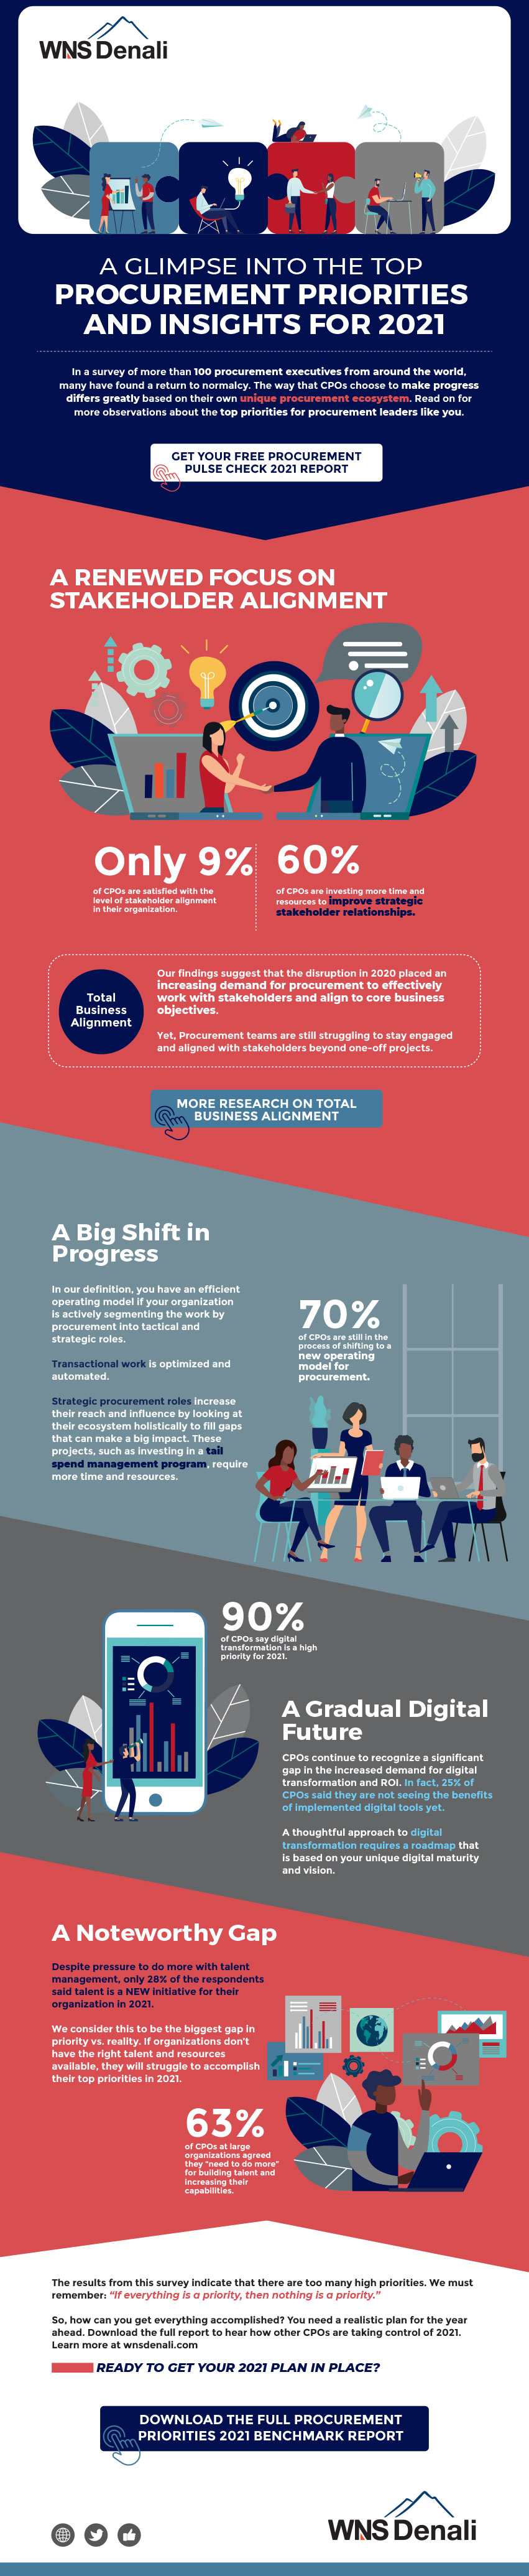 Procurement Priorities and Insights for 2021 Infographic